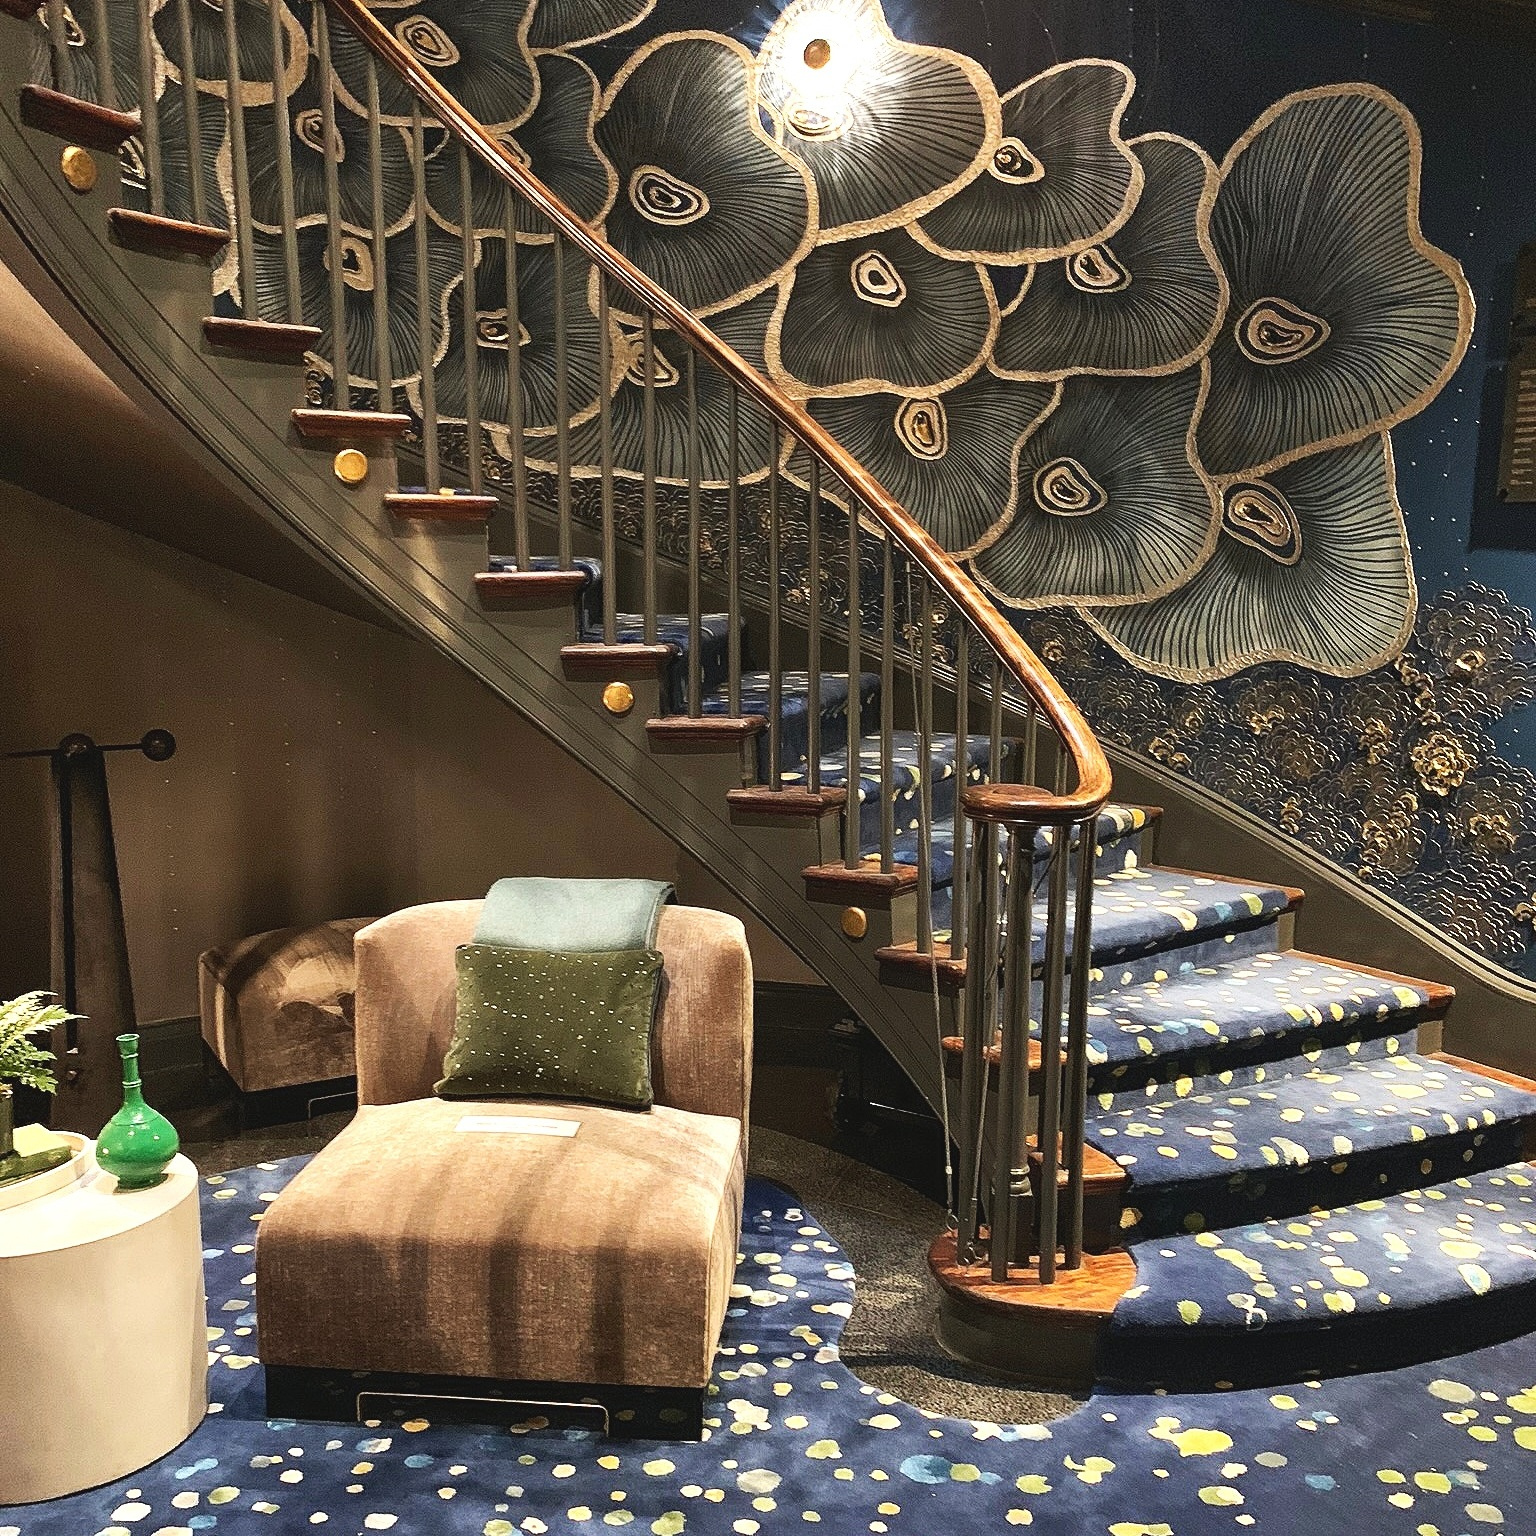 Richard Rabel Interiors and Art Ltd . Entry Gallery and Grand Lower Staircase. The rug was created without knowing that it would so perfectly echo the droplet effect created by the 4-story-spanning mobile above.